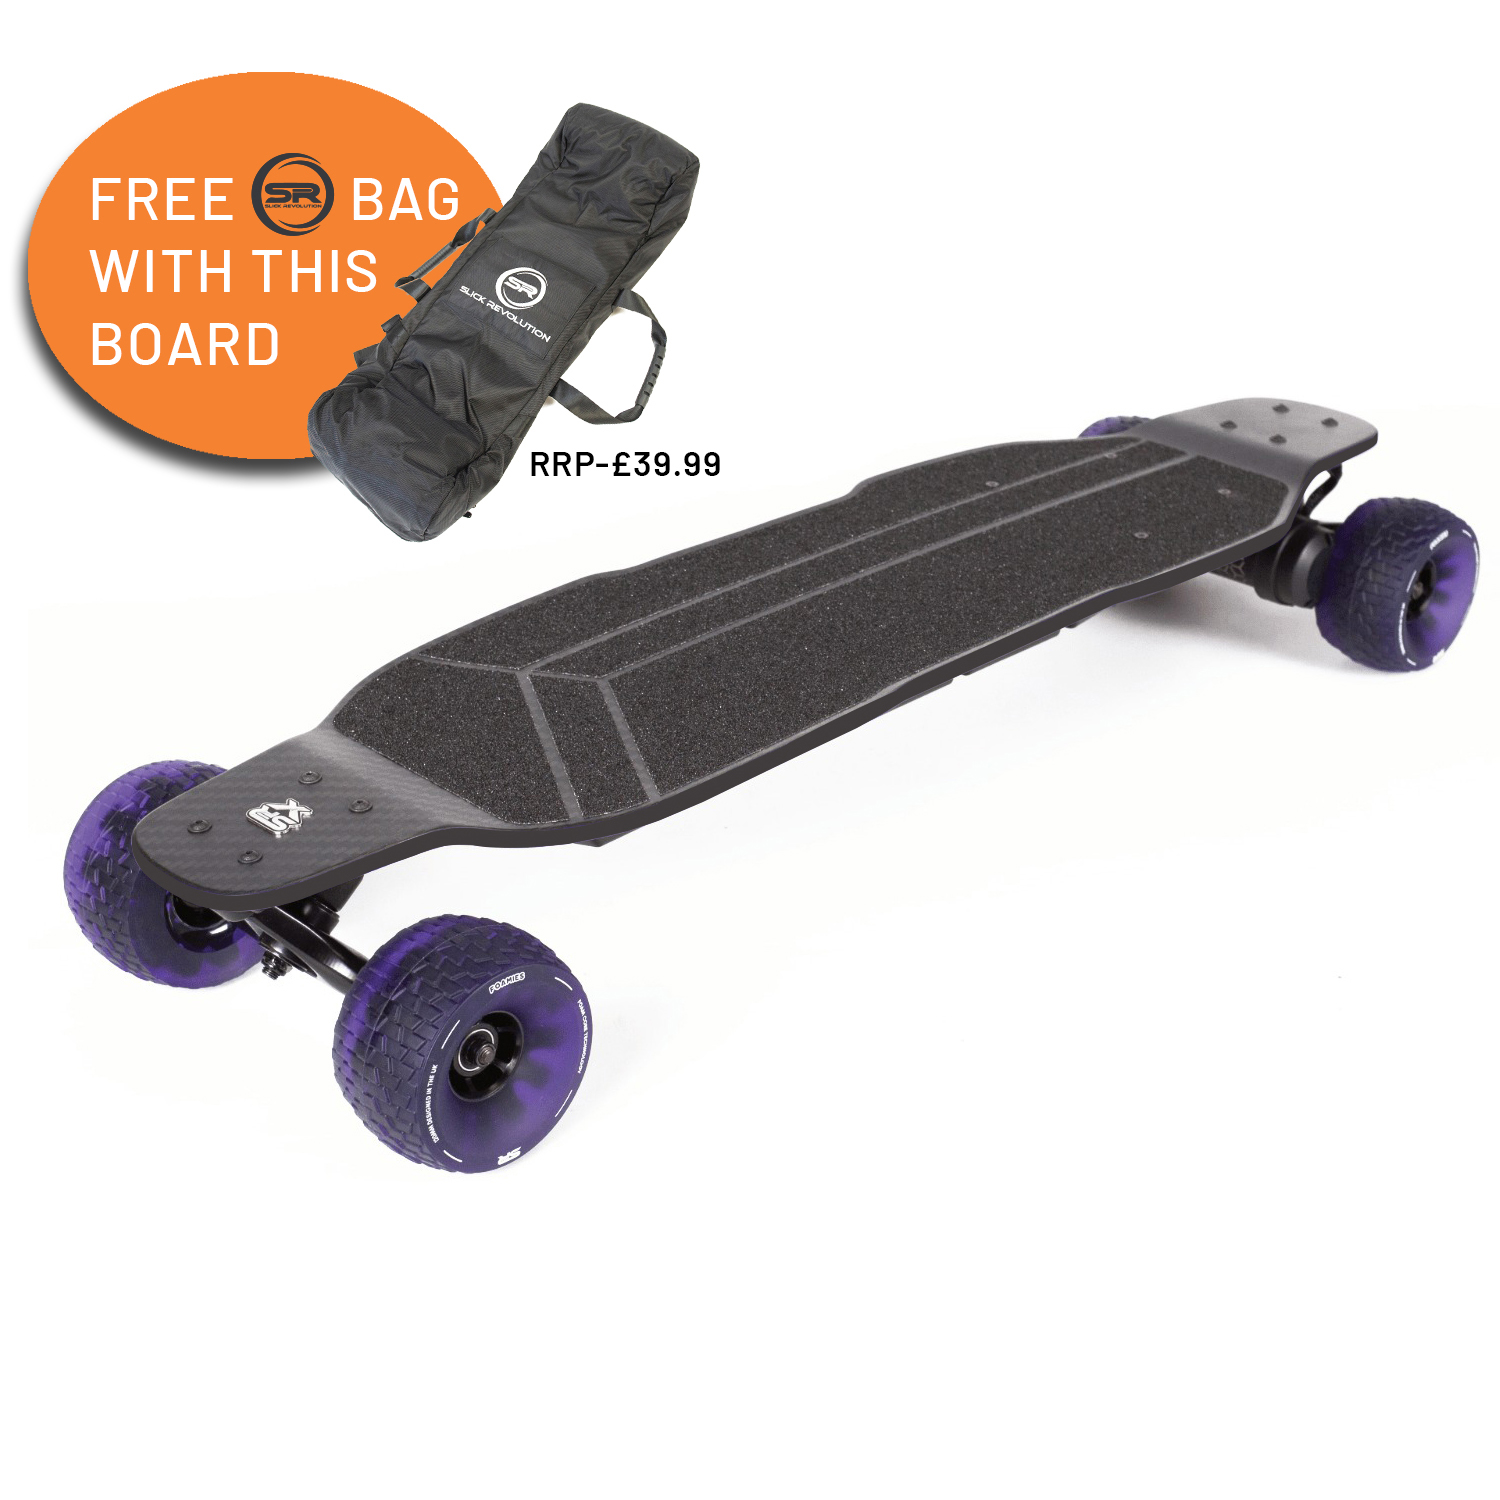 SLICK REVOLUTION FLEW-E-CARBON ELECTRIC SKATEBOARD